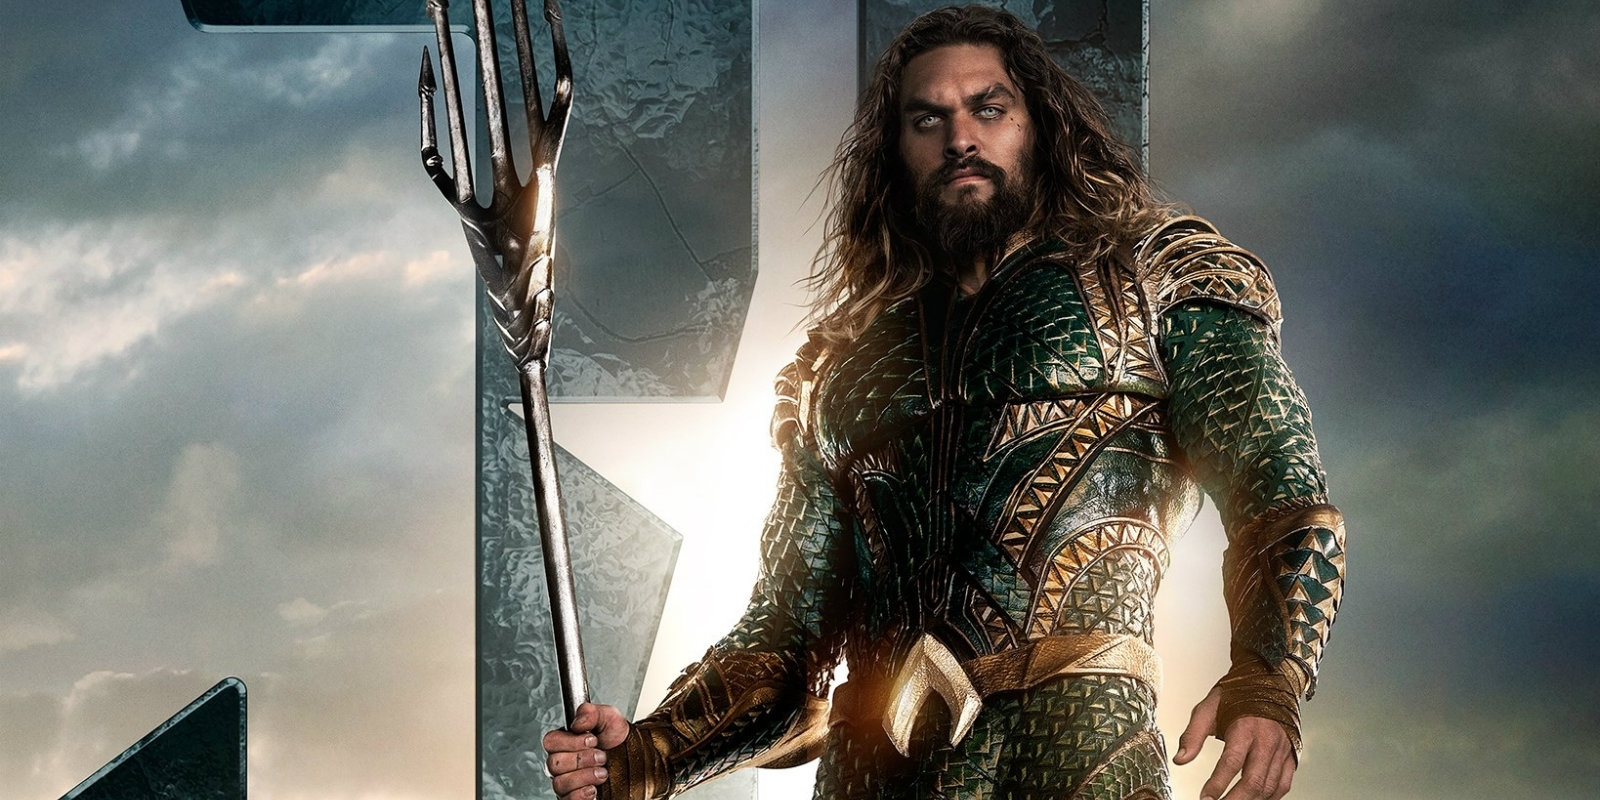 Jason Momoa Says He's a 'Degenerate', Not a Role Model